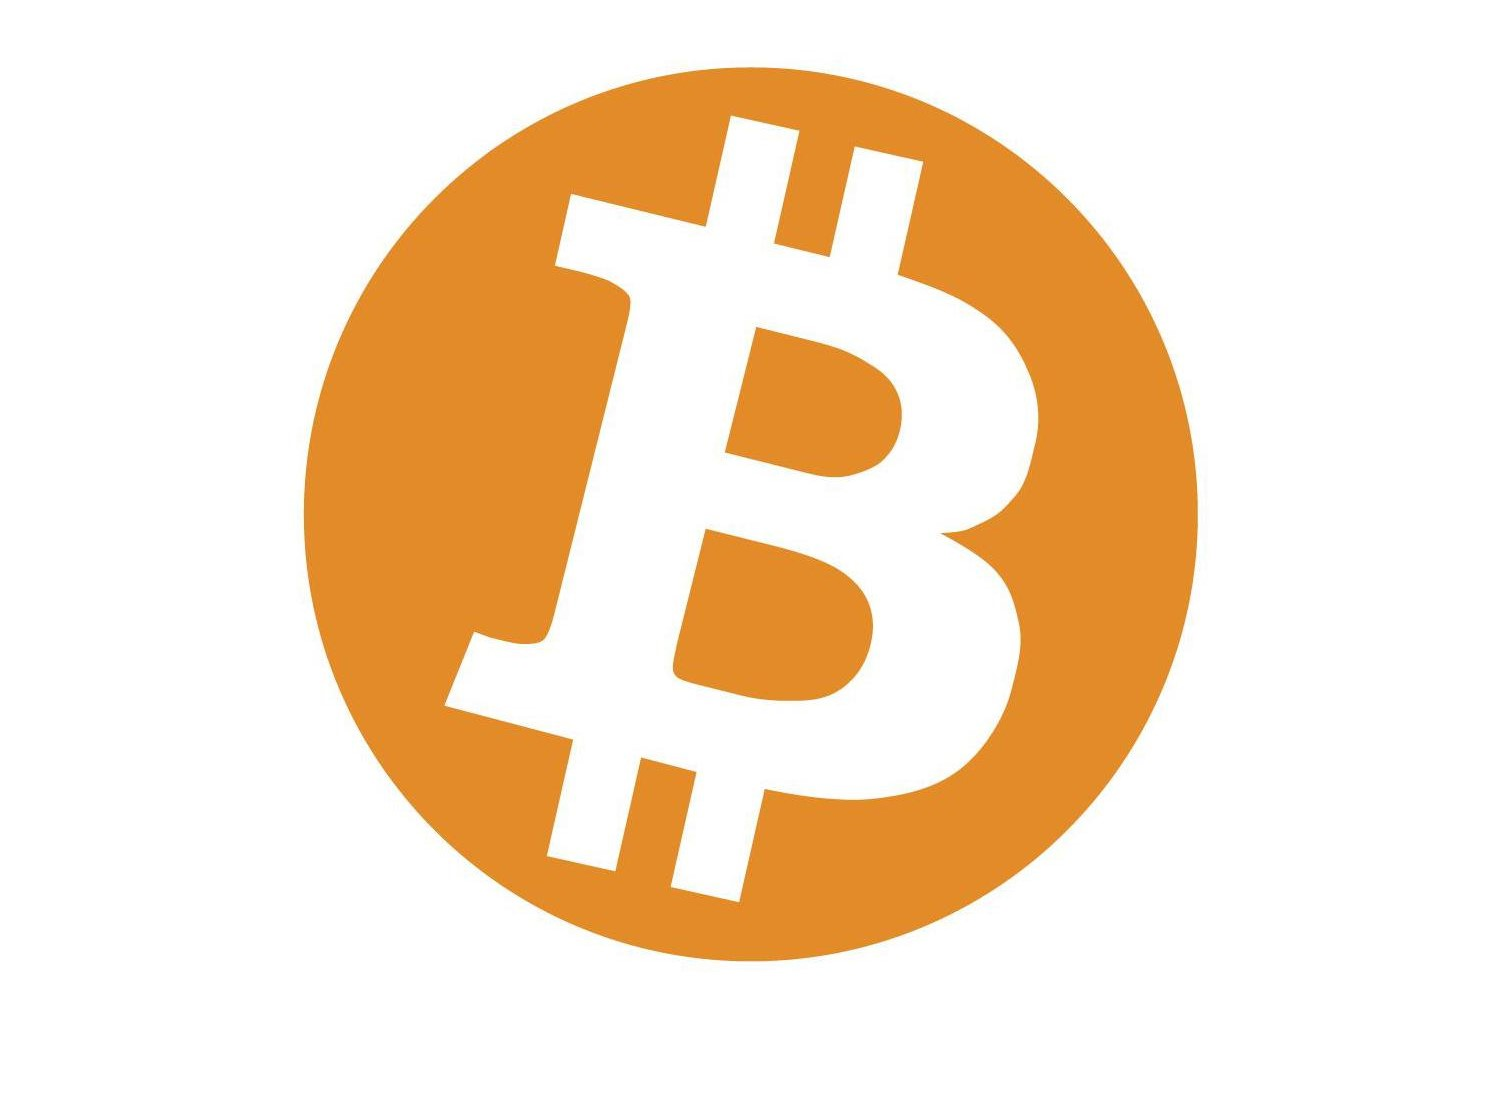 About That Orange B… The History of Bitcoin's Logos